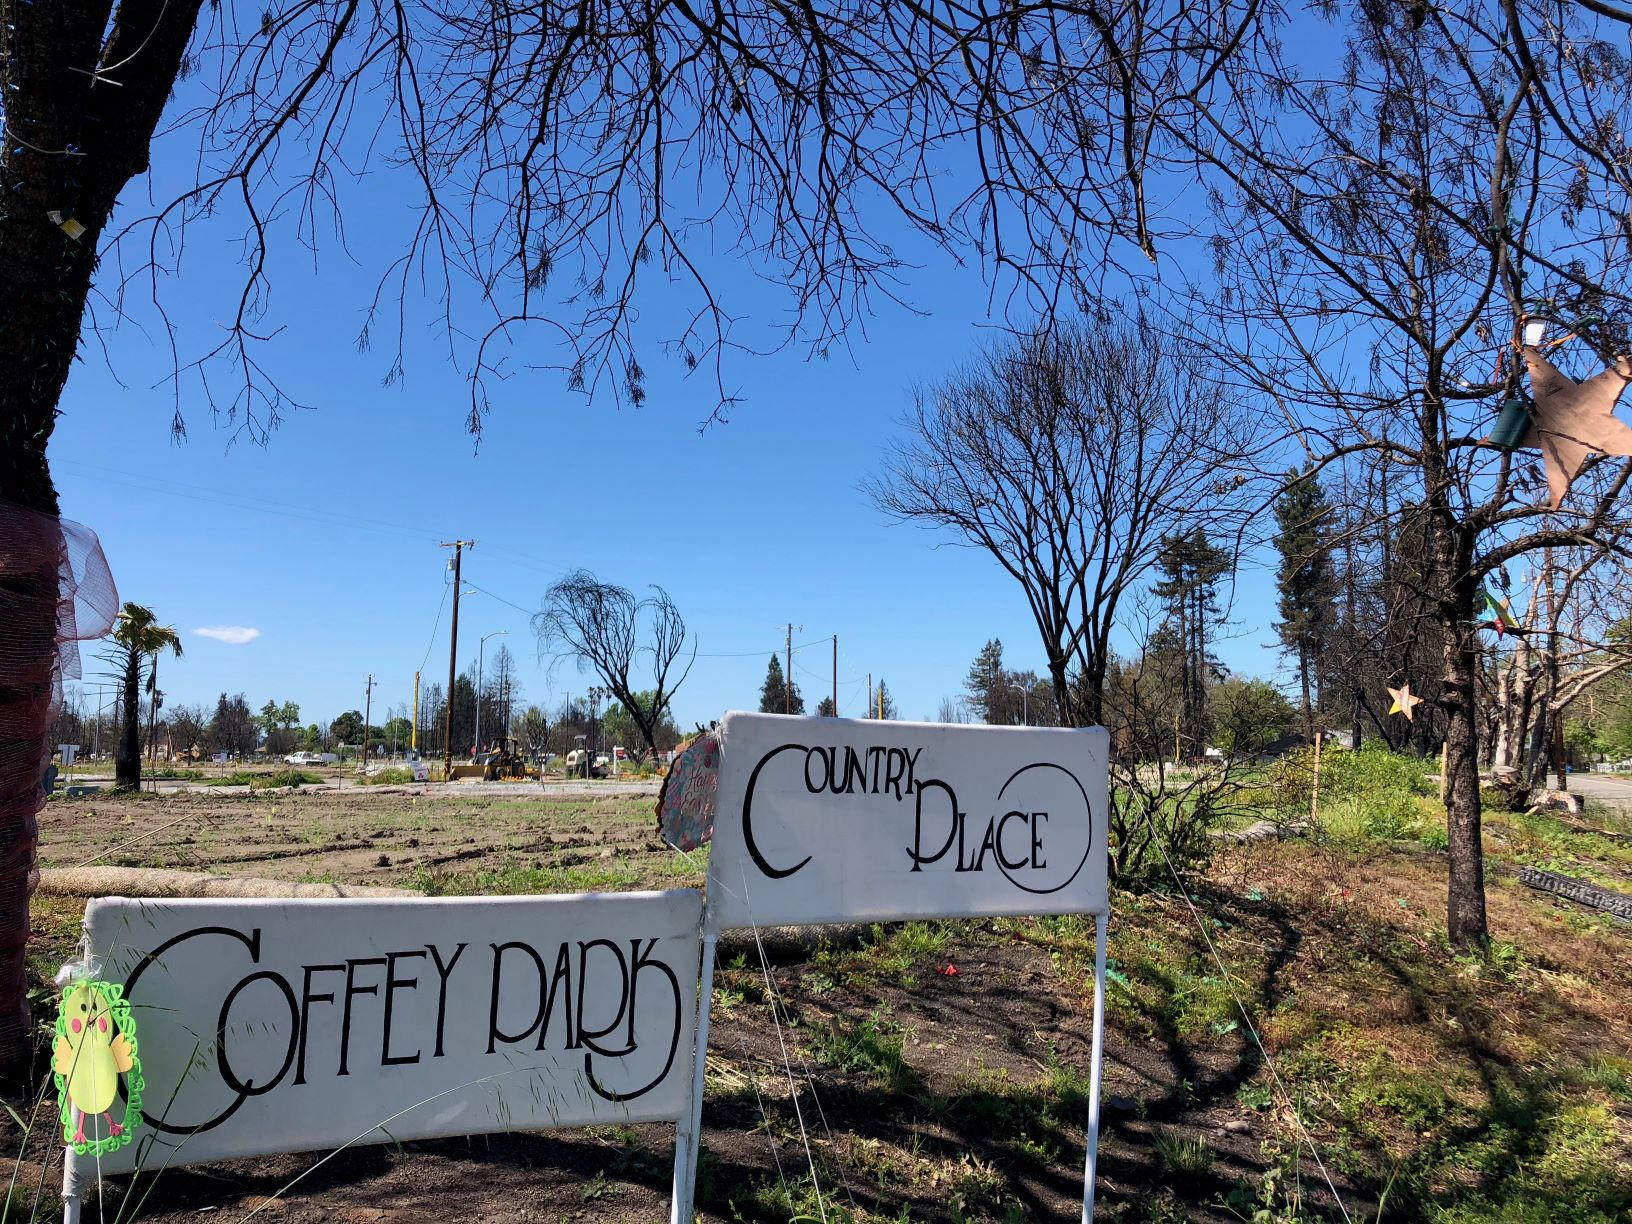 Coffey Park after the 2017 Tubbs Fire